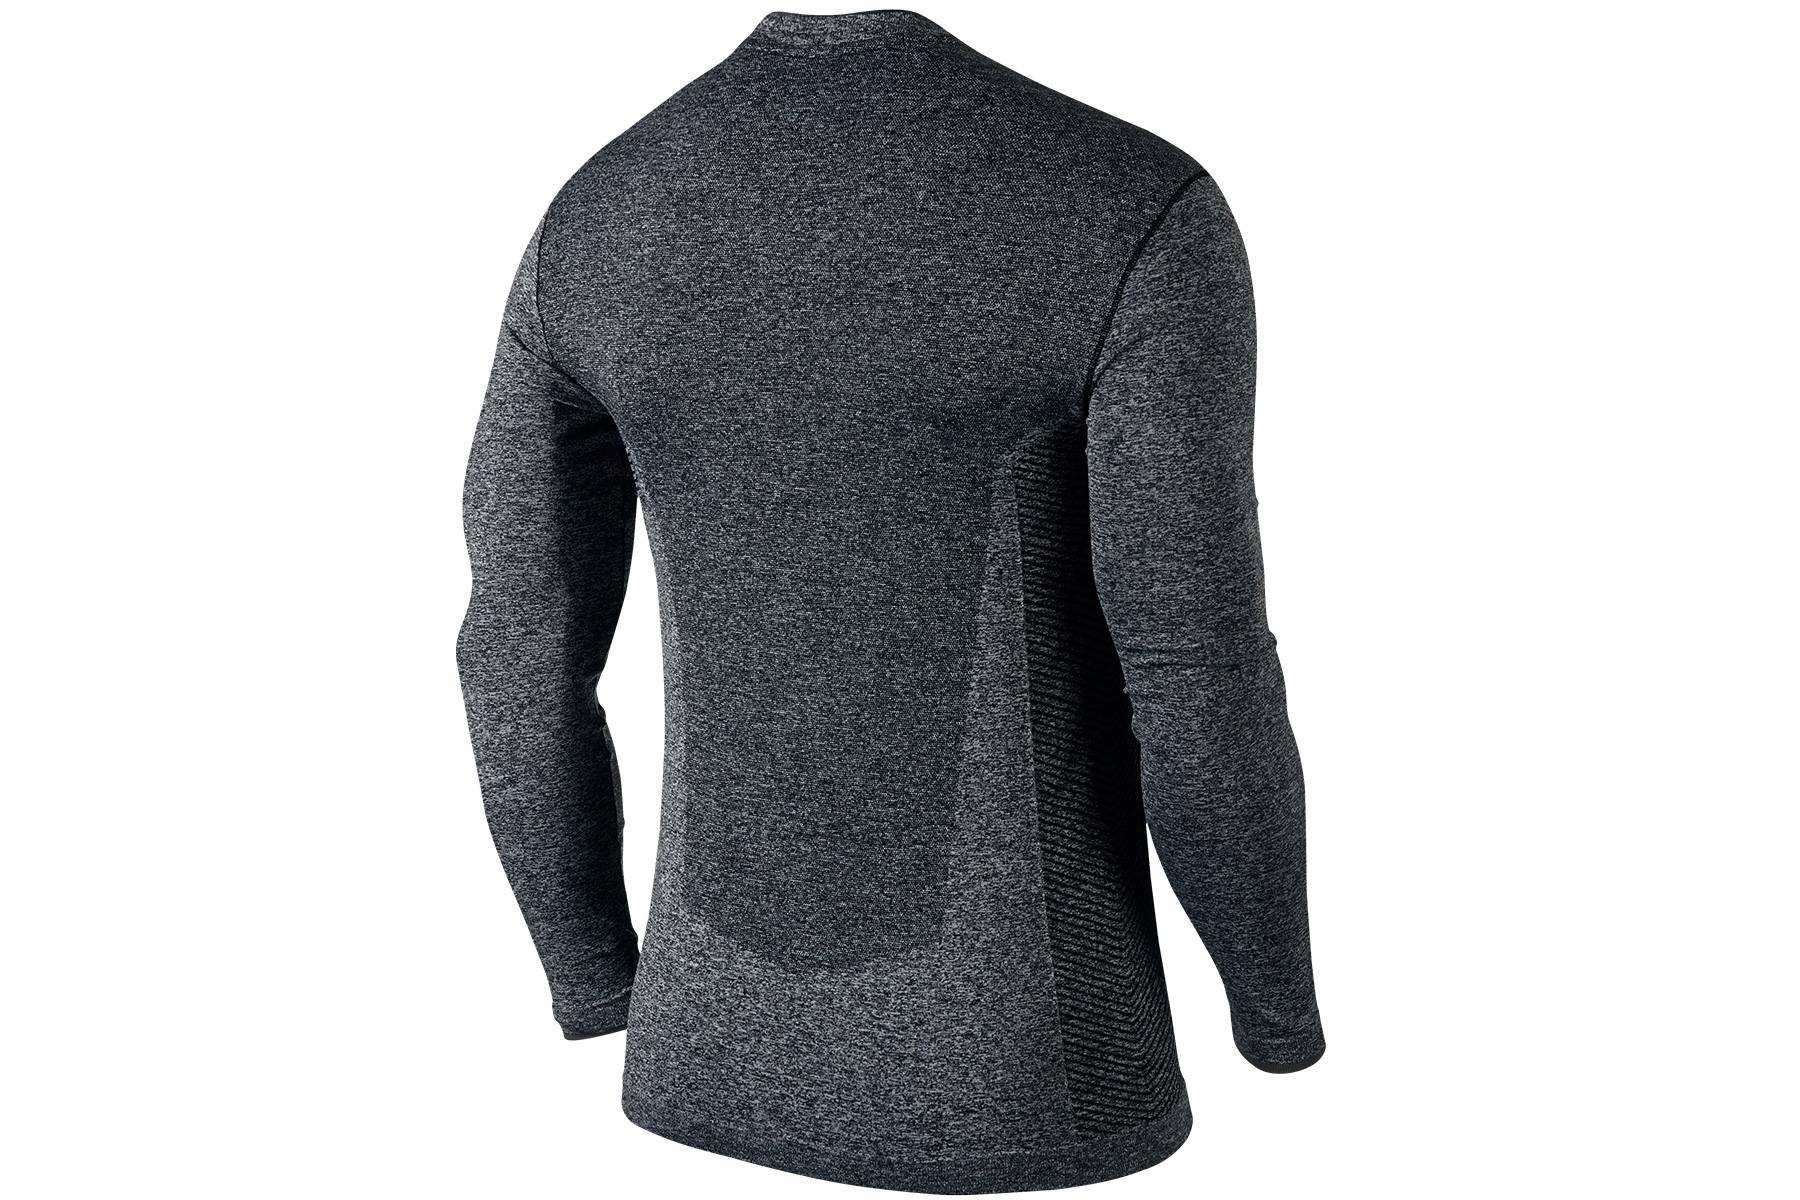 Knitting Patterns For Golf Jumpers : Nike Golf Dri-Fit Knit V-Neck Sweater Online Golf